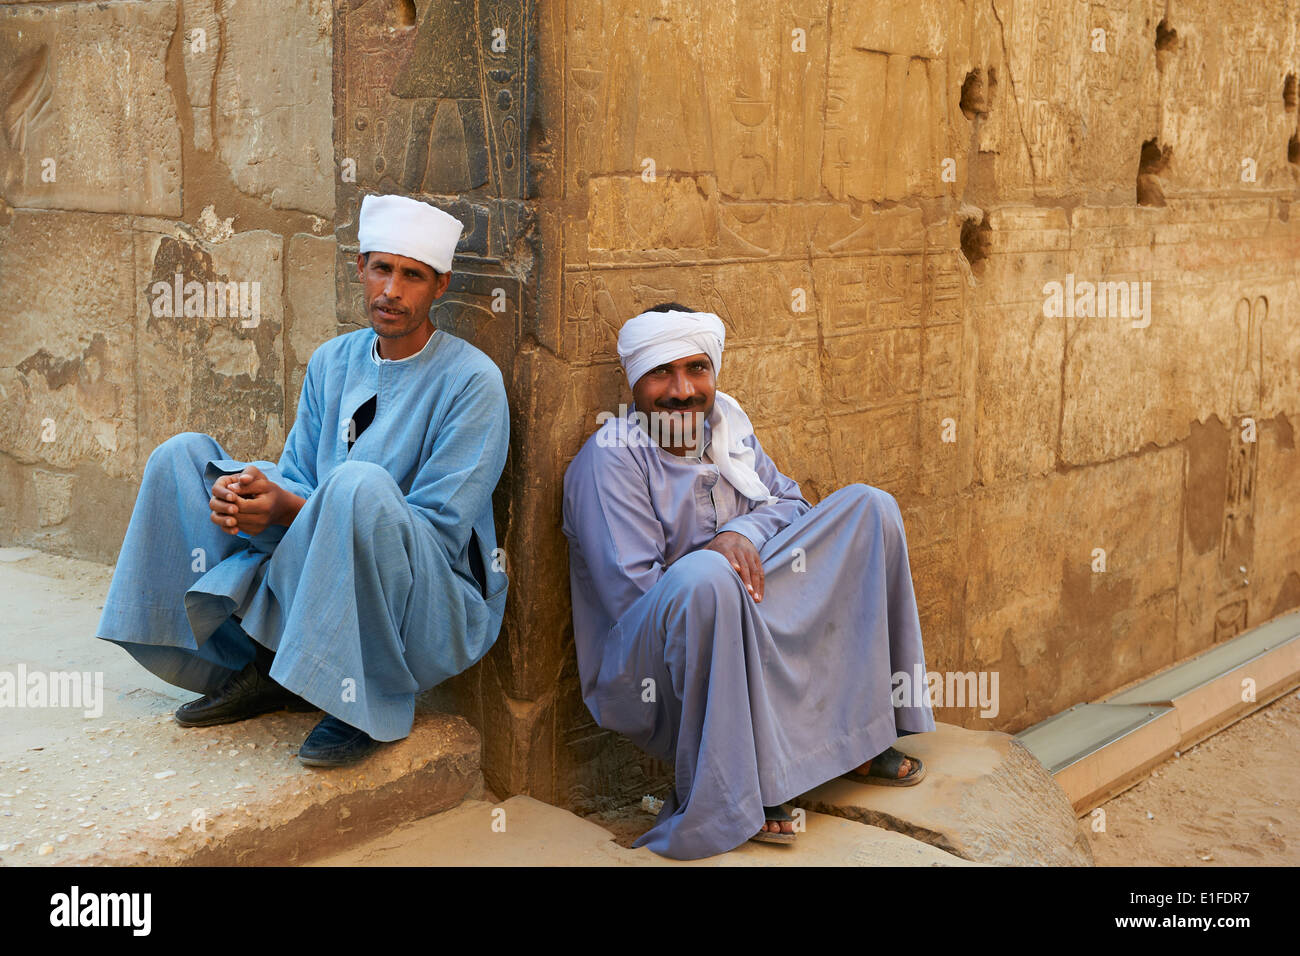 Egypt, Nile Valley, Luxor, The Temple of Luxor, Temple guard - Stock Image